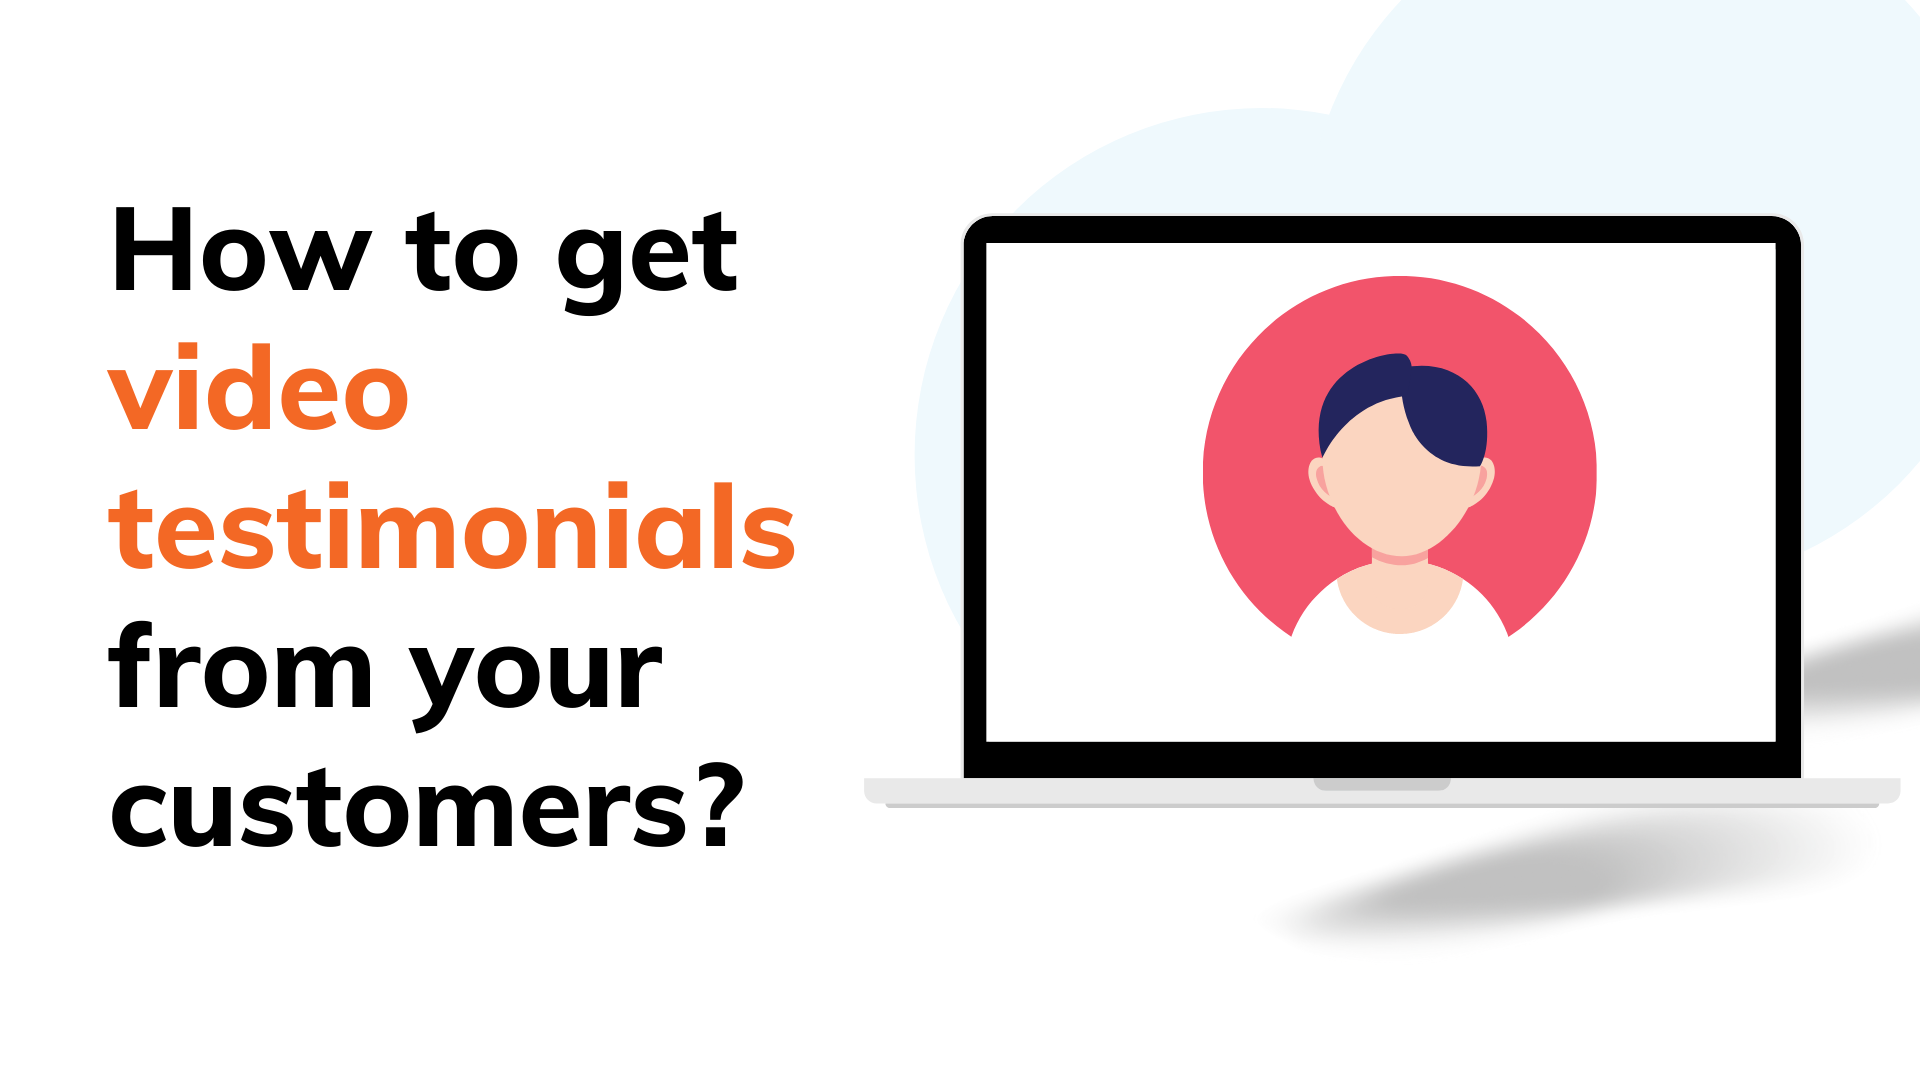 How to get video testimonials from your customers?